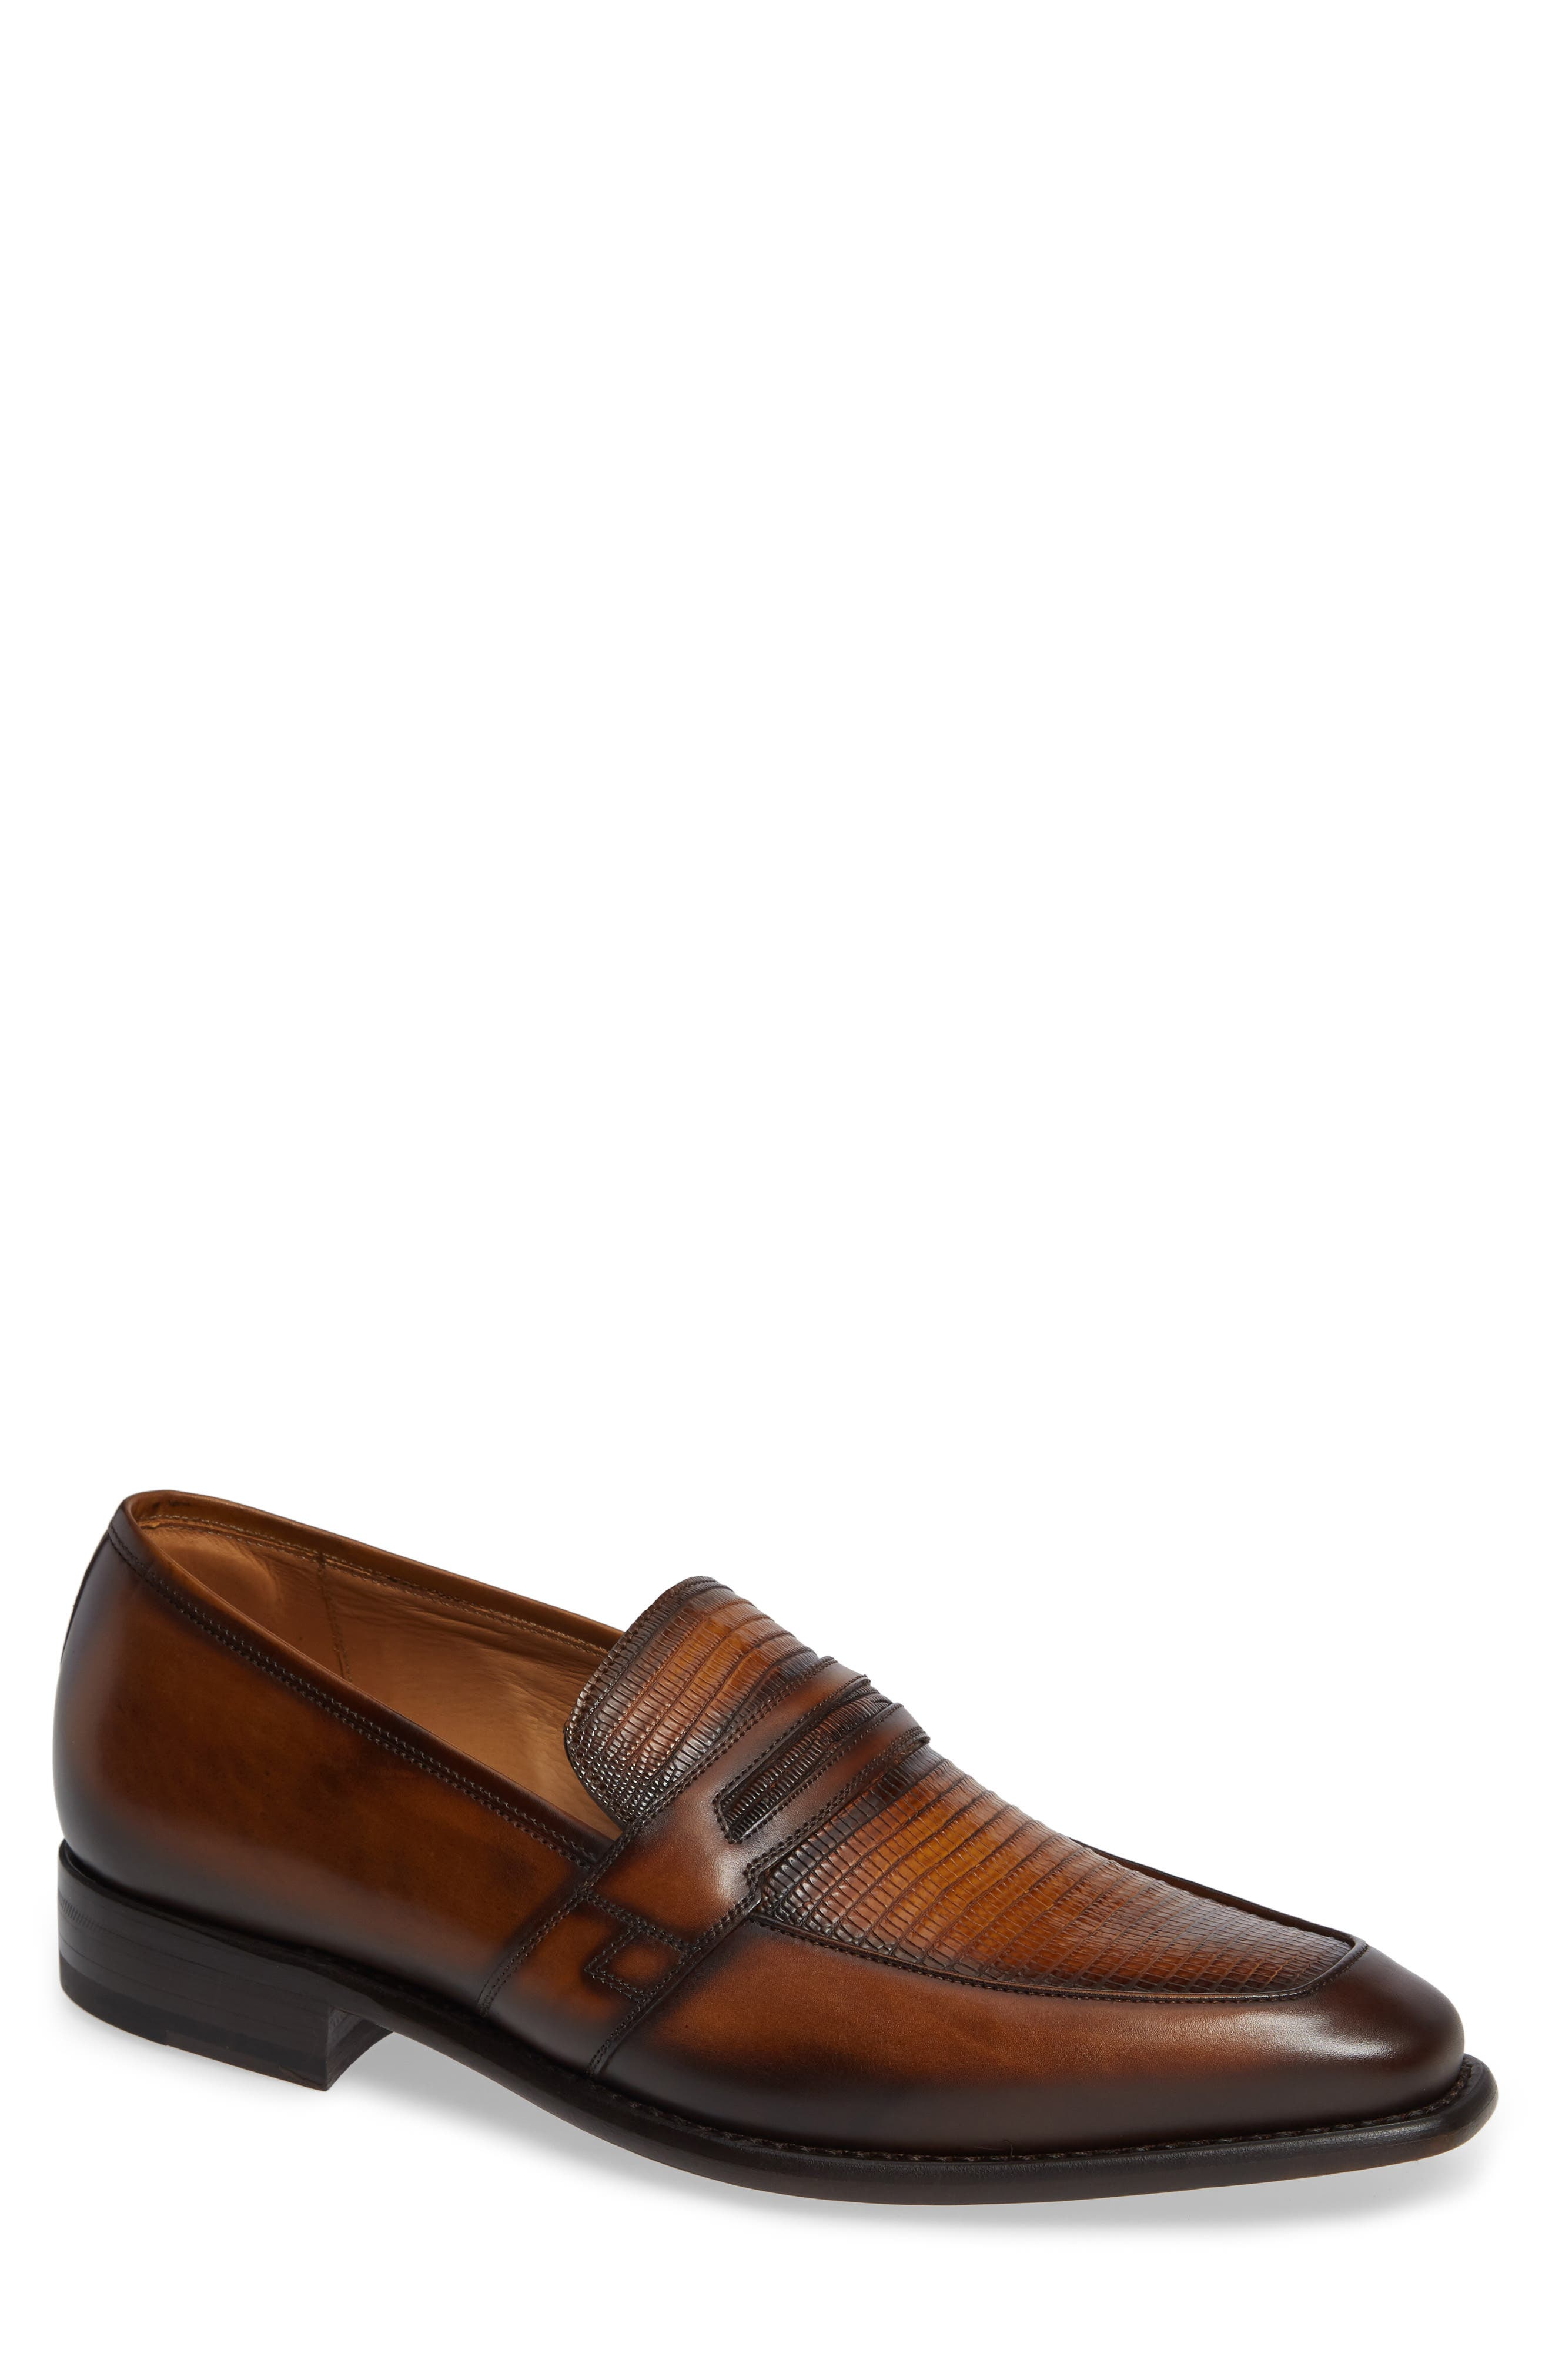 Hess Penny Loafer,                             Main thumbnail 1, color,                             HONEY LEATHER